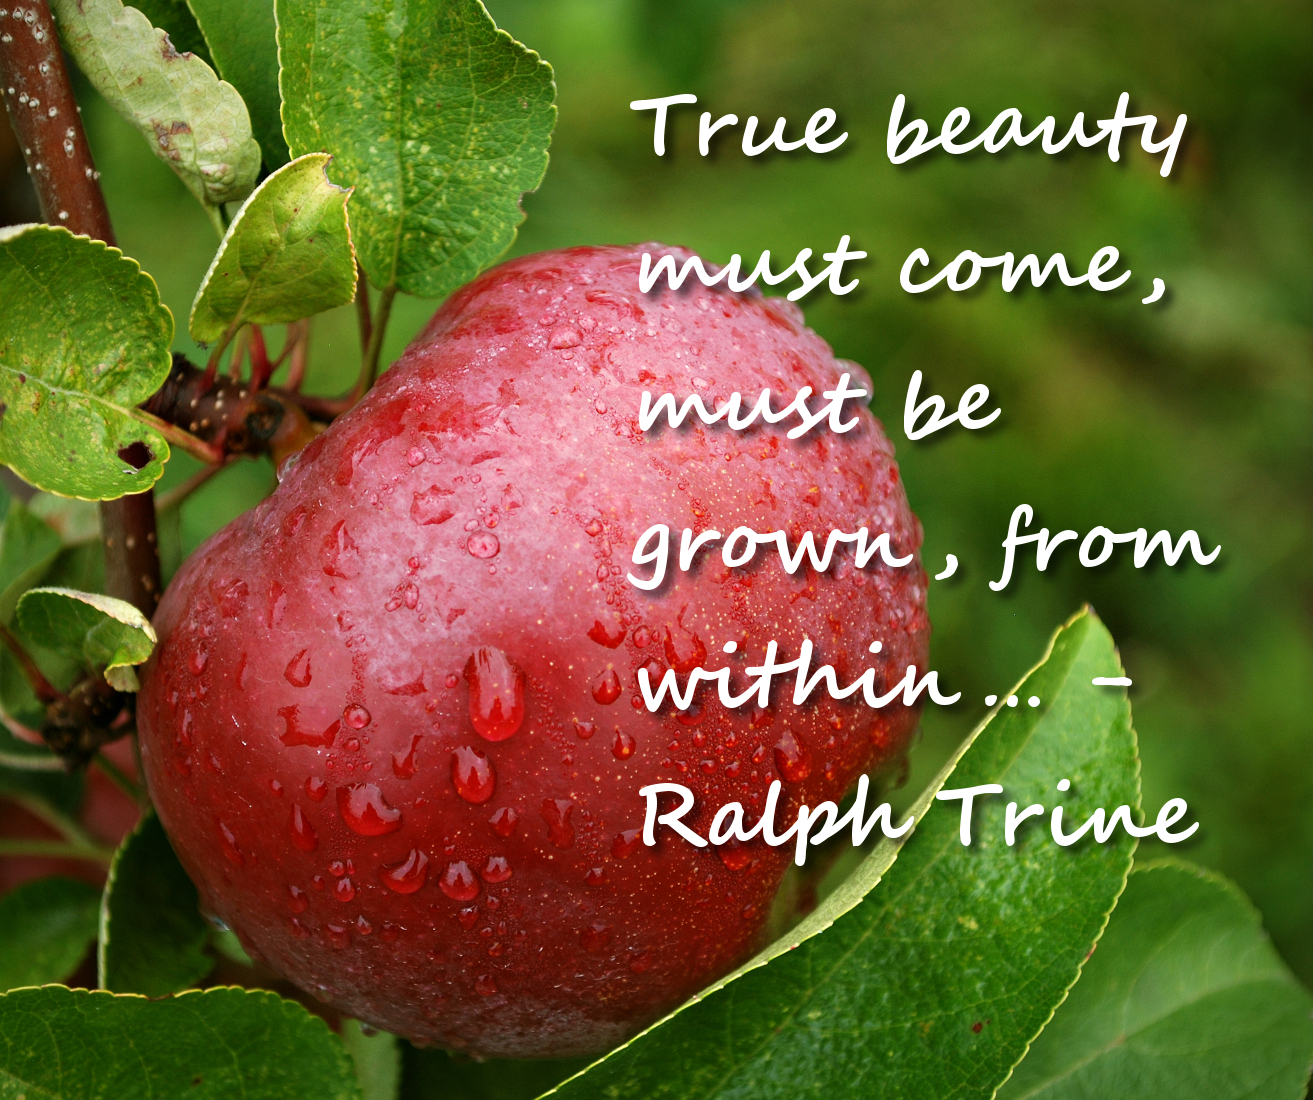 When Beauty Comes From Within